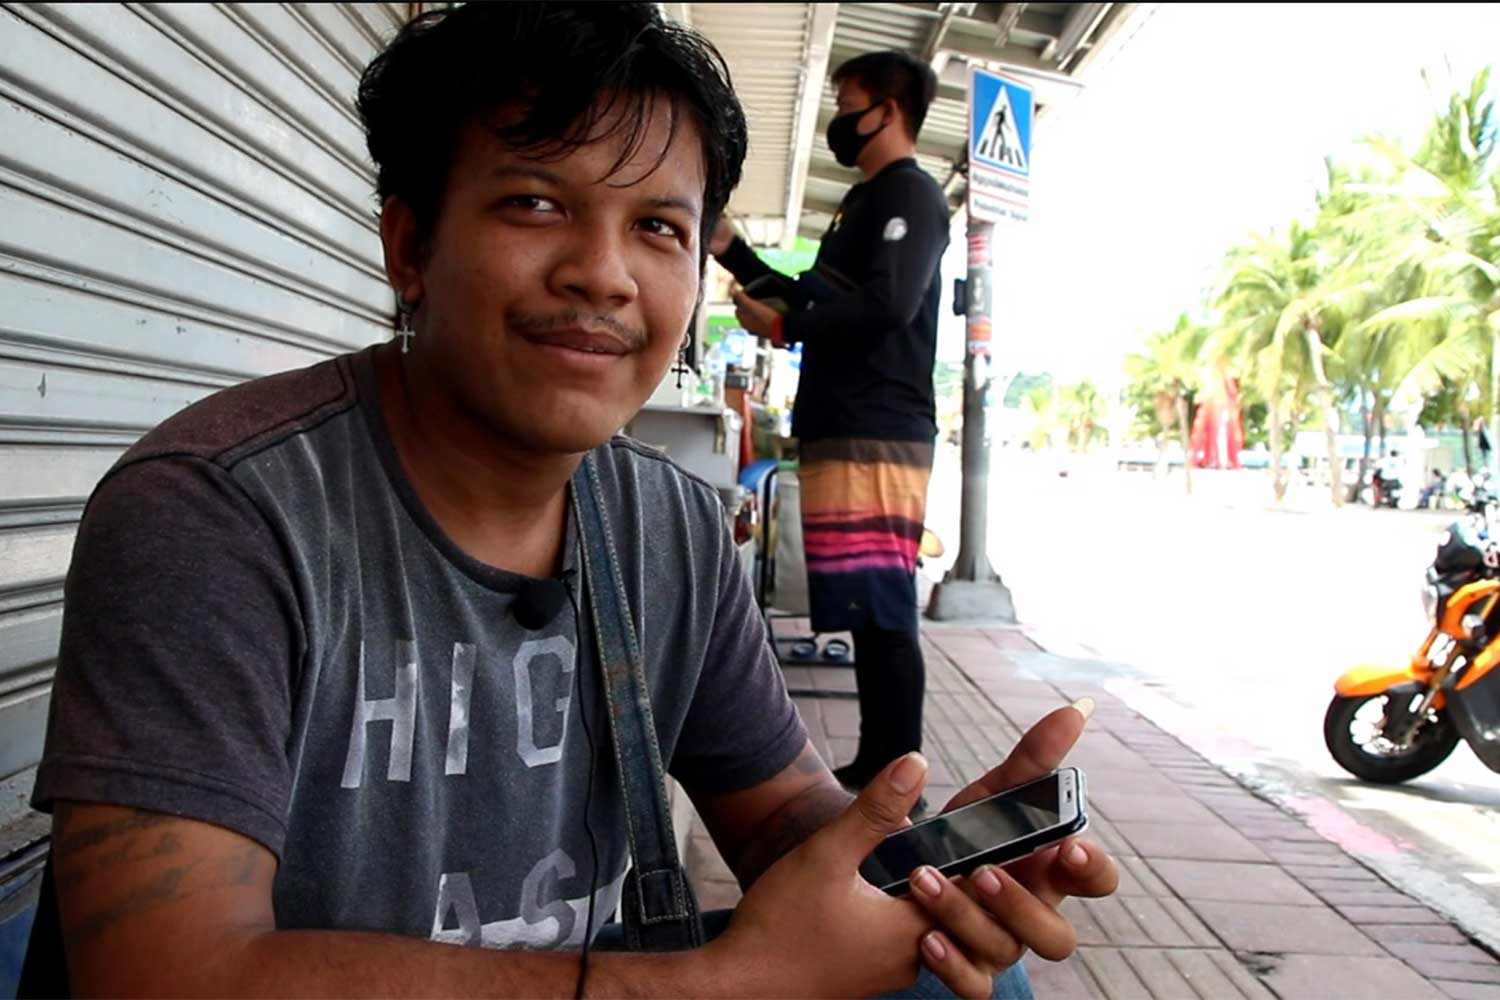 Sarawut Wongthee lost his job at a Pattaya pub and was down to his last five baht when news of his plight began to spread, turning his life around. (Photo by Chaiyot Pupattanapong)